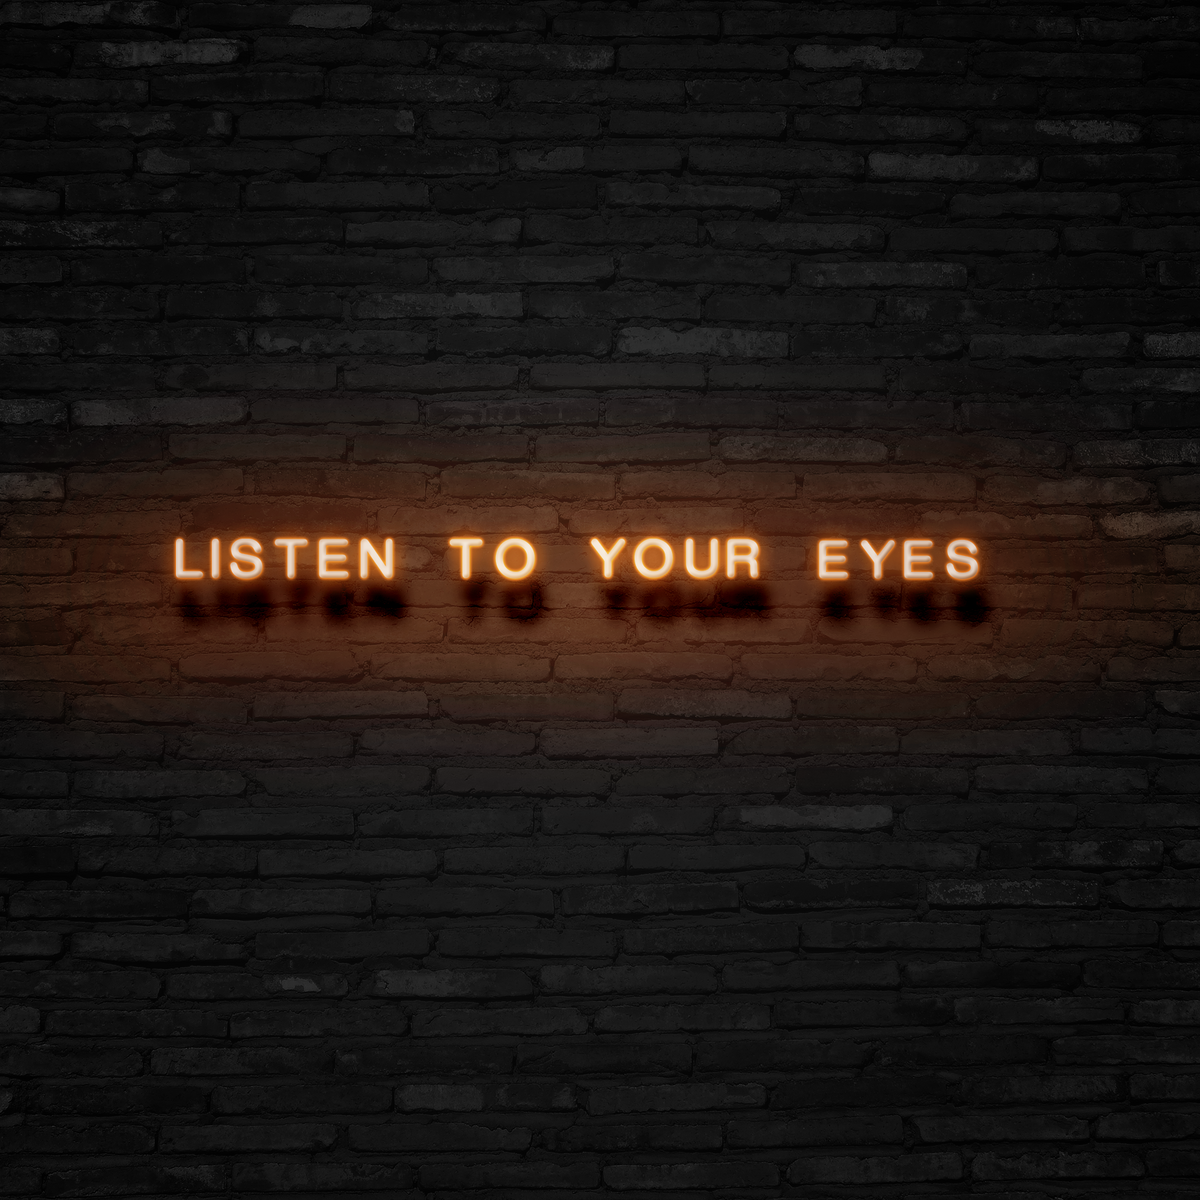 LISTEN TO YOUR EYES - Neon Sign